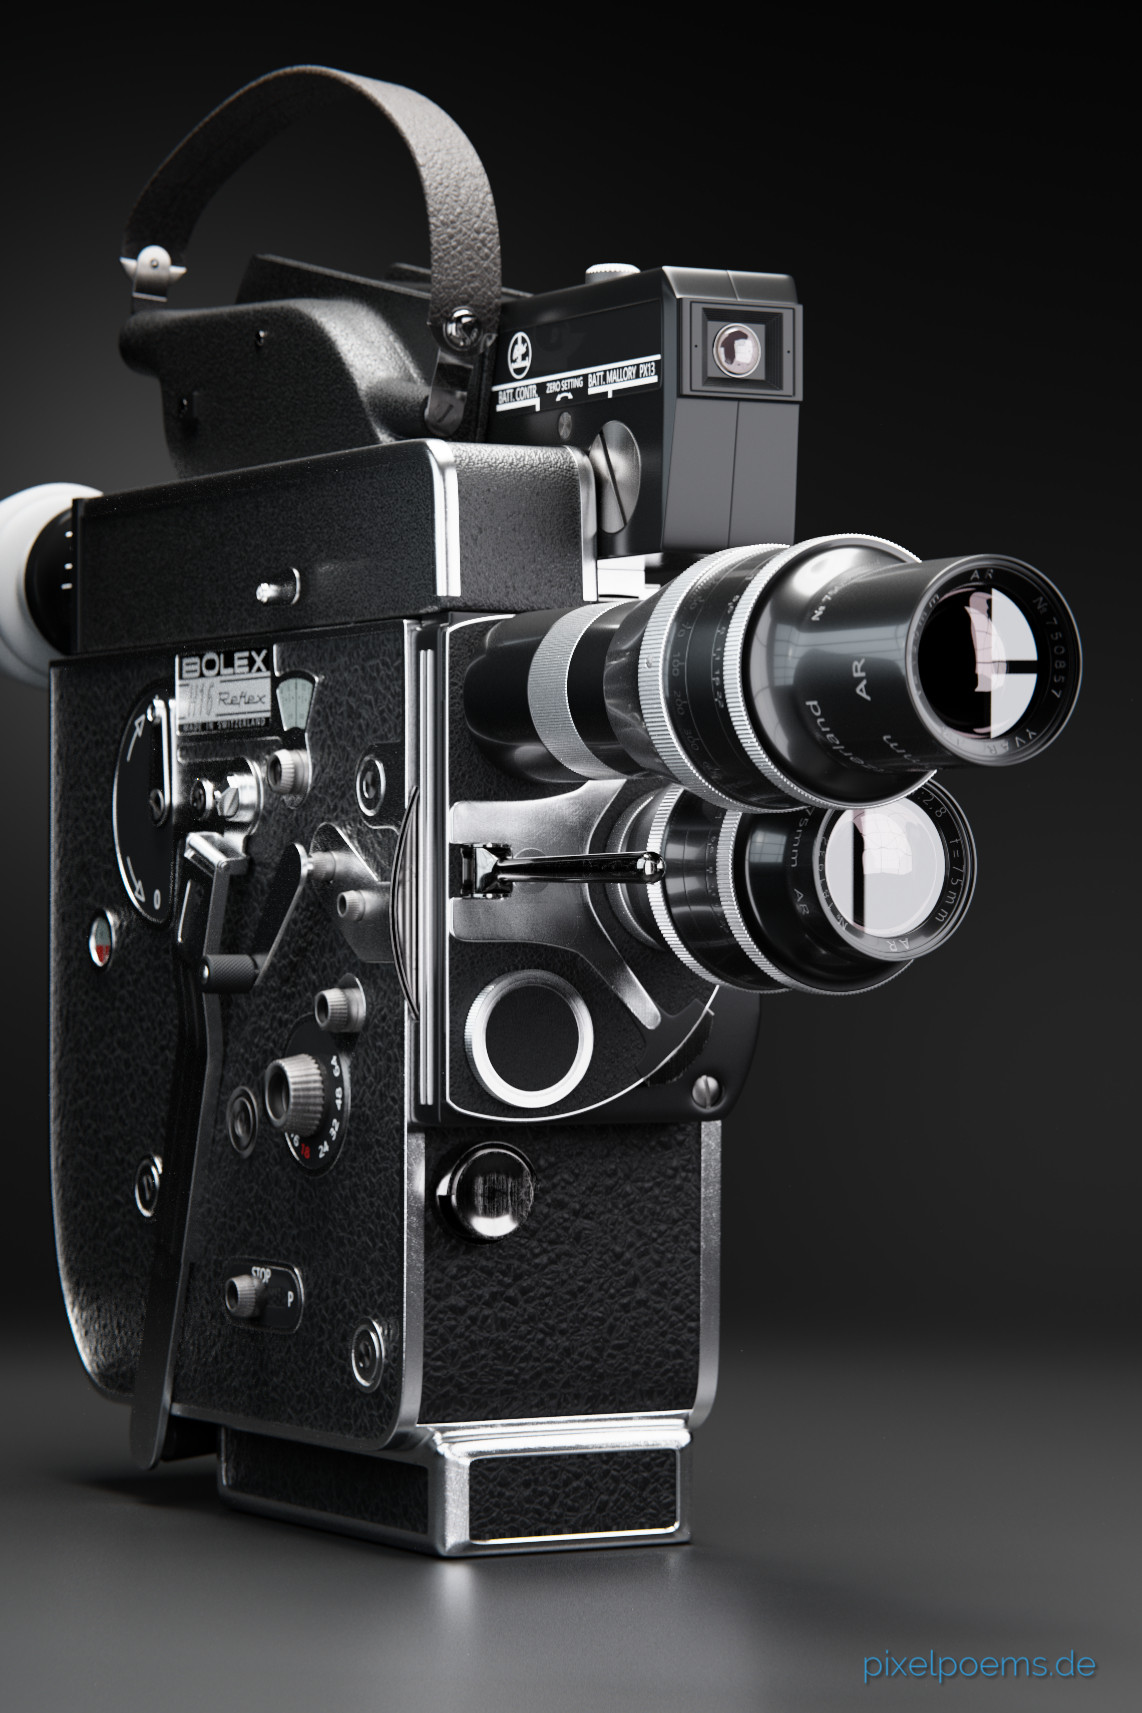 Karl andreas gross bolex h16 rex5 002